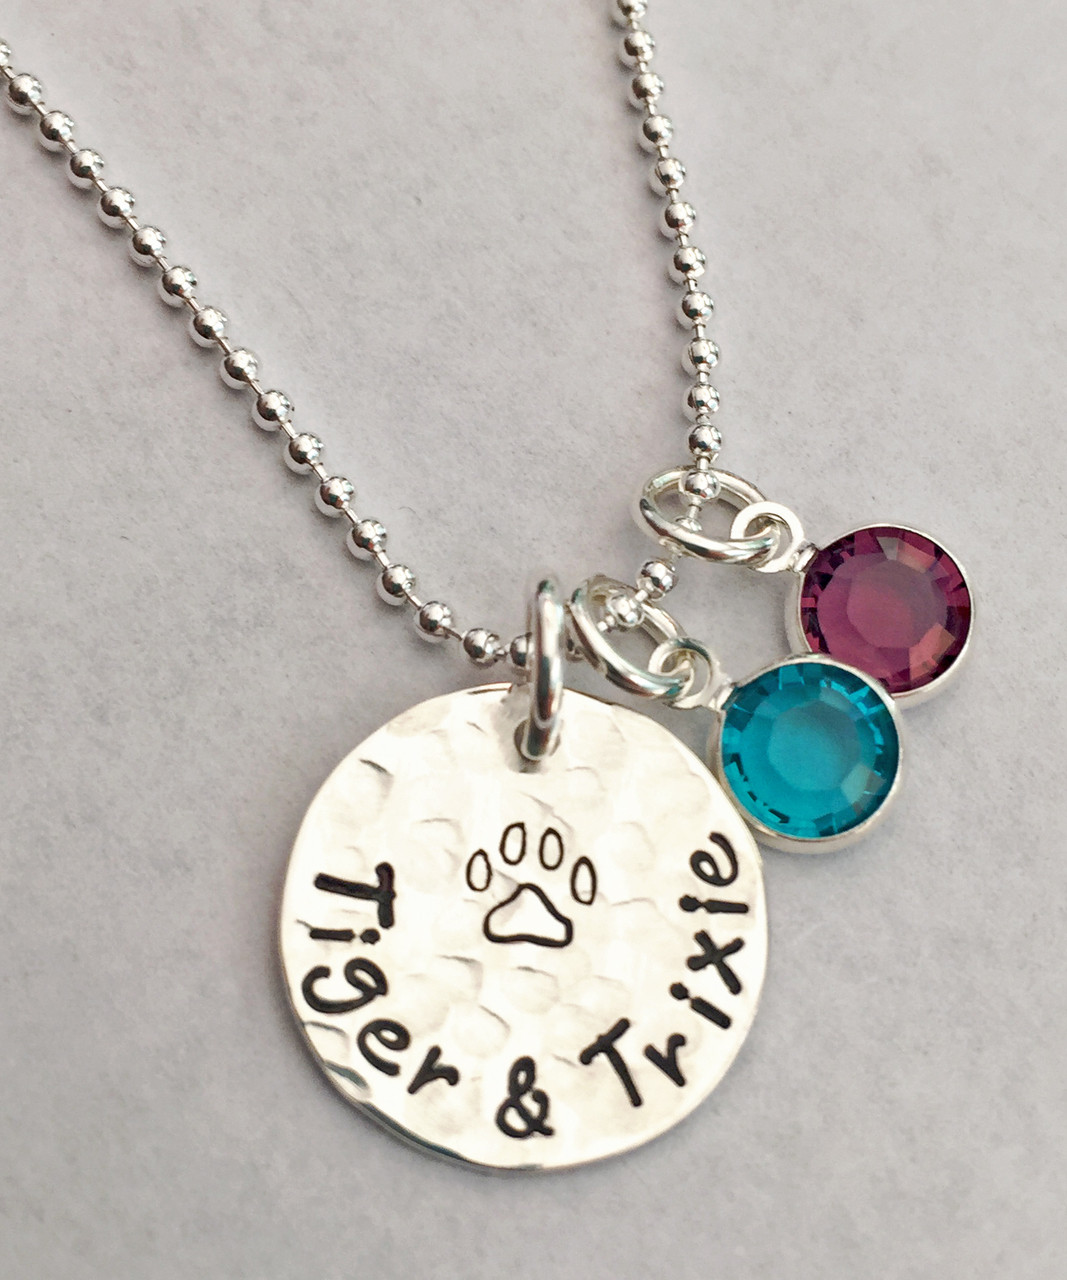 f0243d6bf Hand Stamped Dog Paw/Cat Paw Charm with Pet Name and Genuine Swarovski  Birthstone,